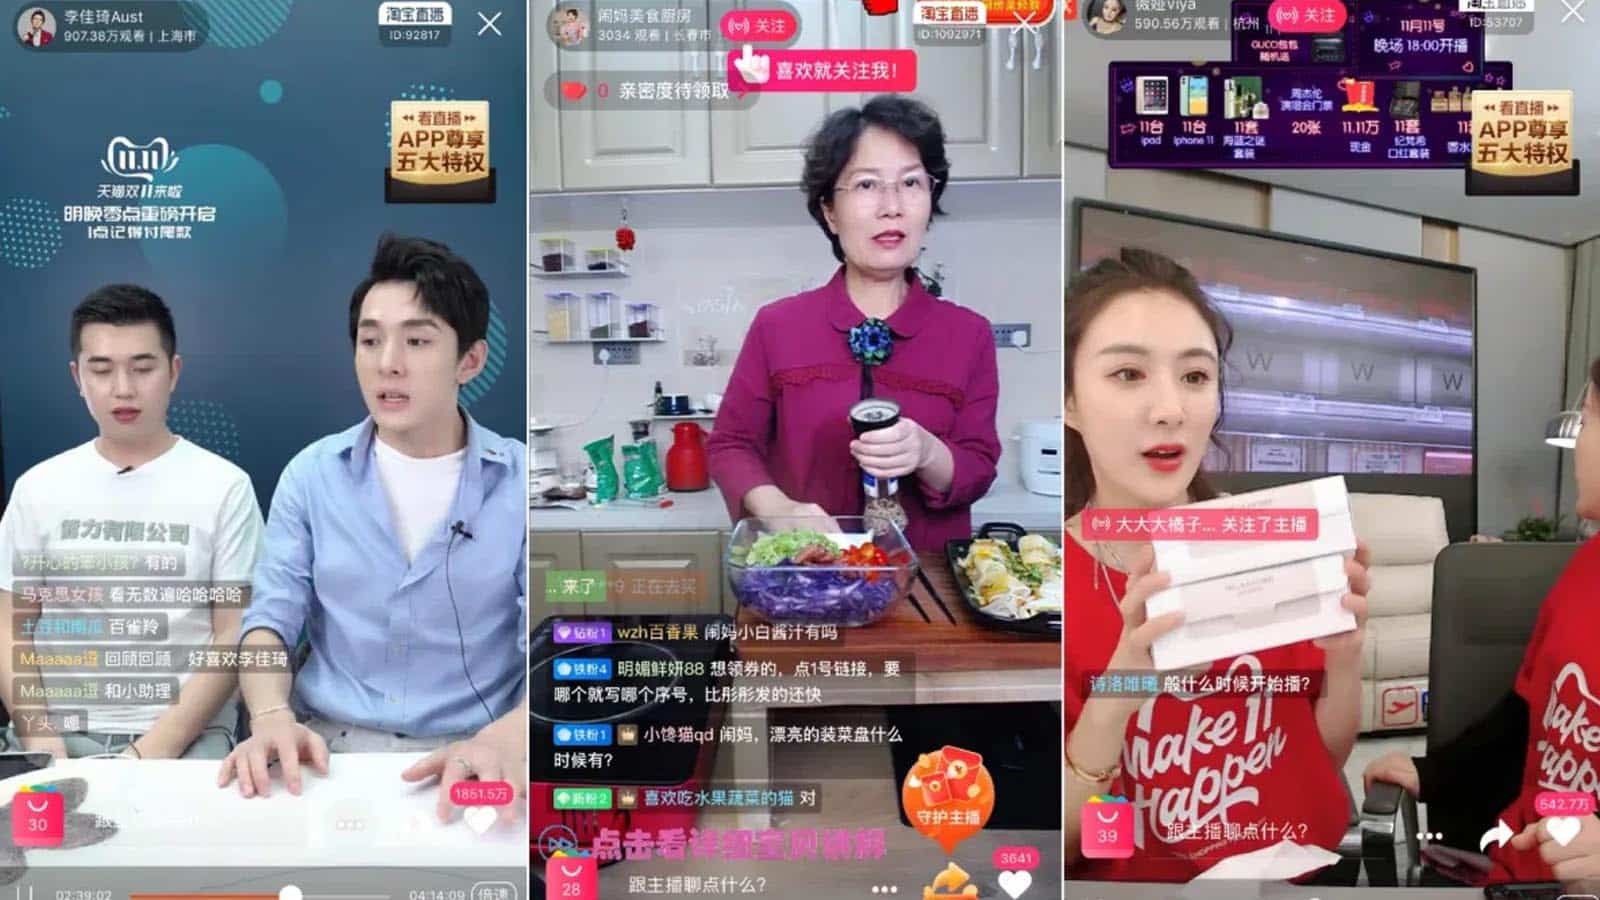 livestreaming in china